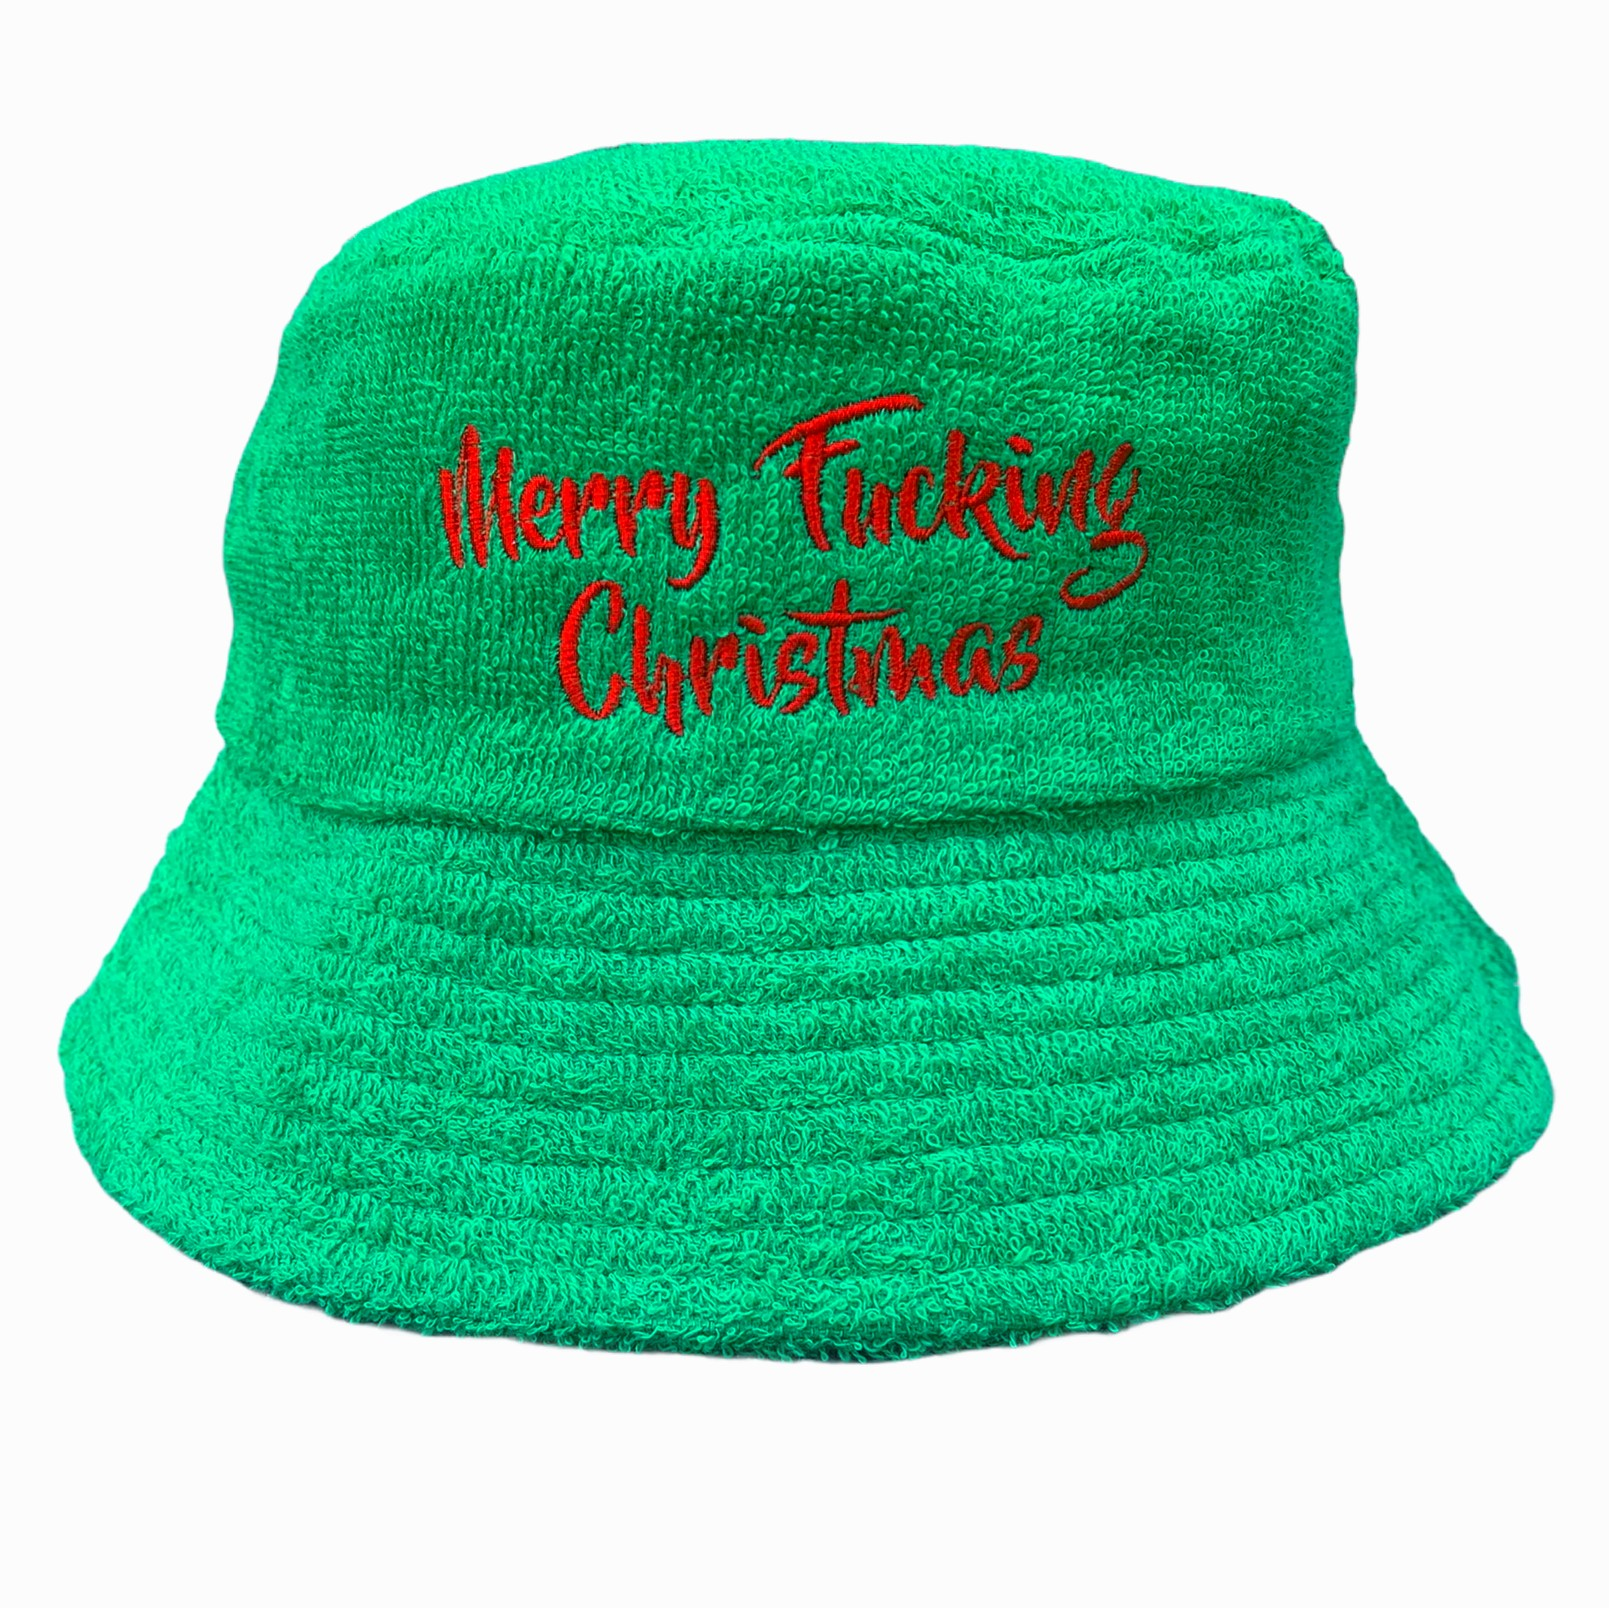 GREEN MERRY CHRISTMAS TERRY TOWEL BUCKET HAT